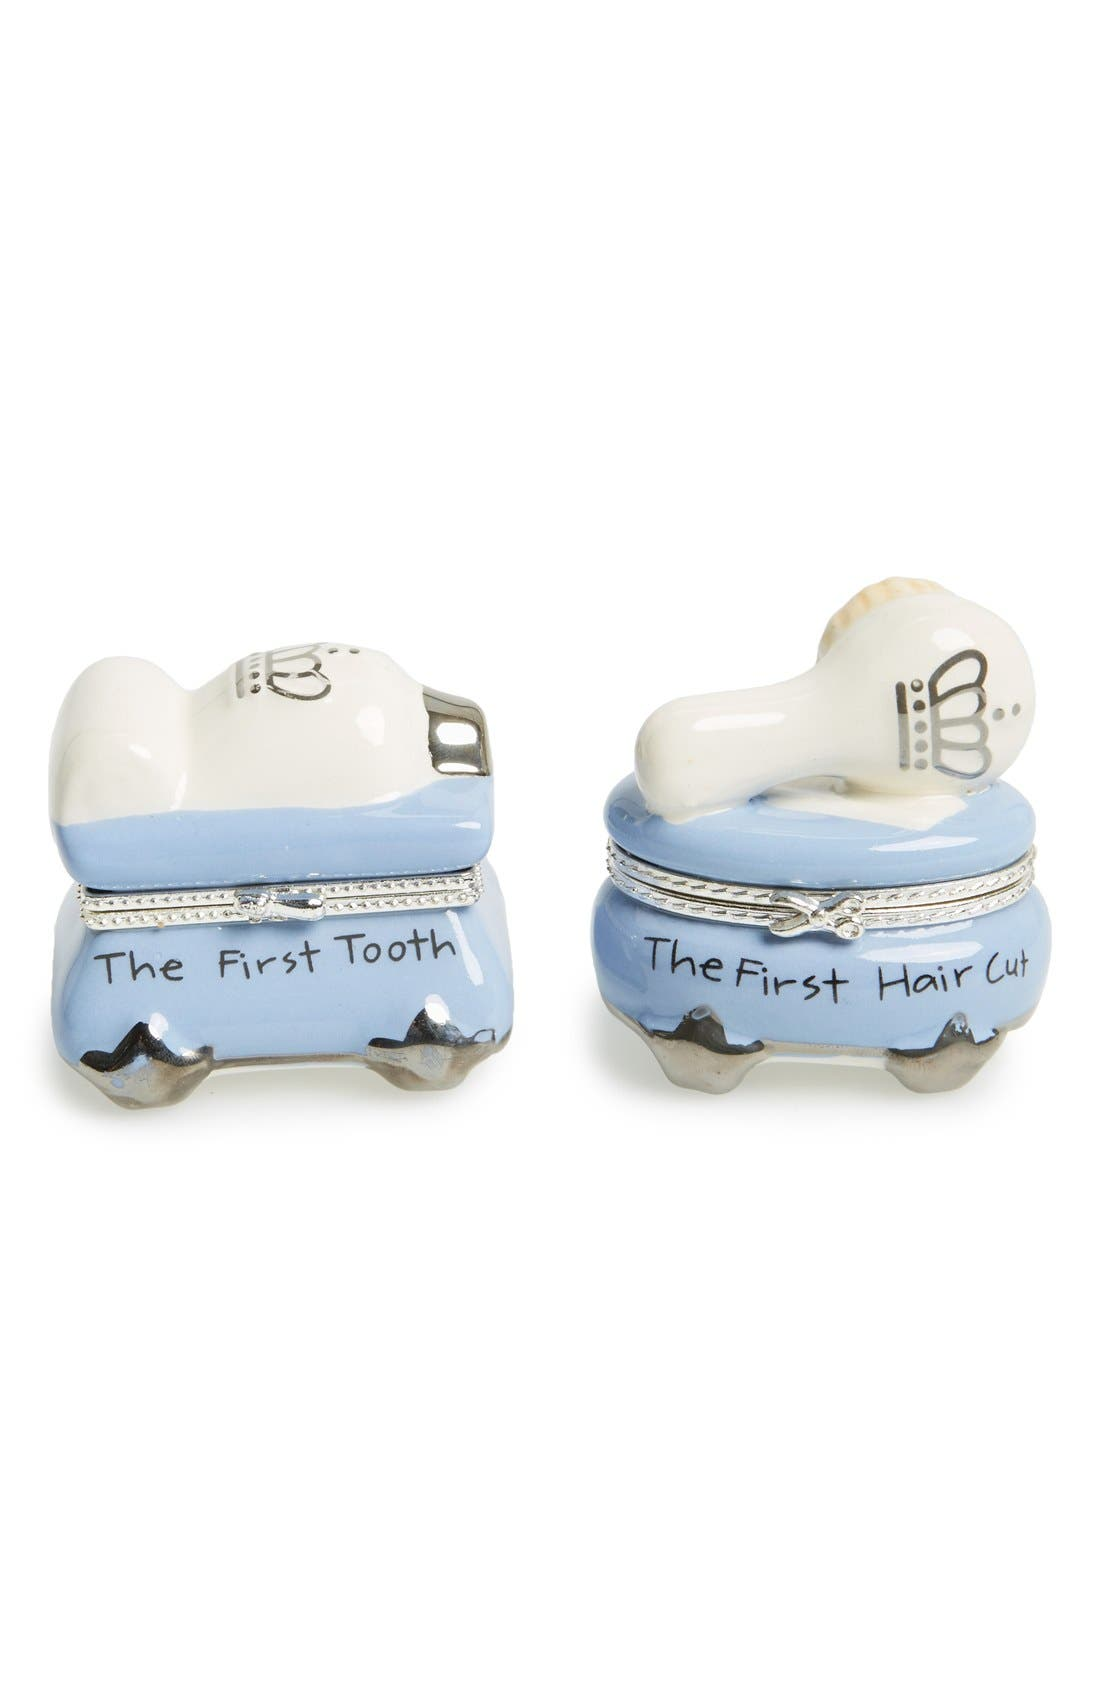 'Prince' First Tooth & Curl Treasure Box Set,                             Main thumbnail 1, color,                             Blue